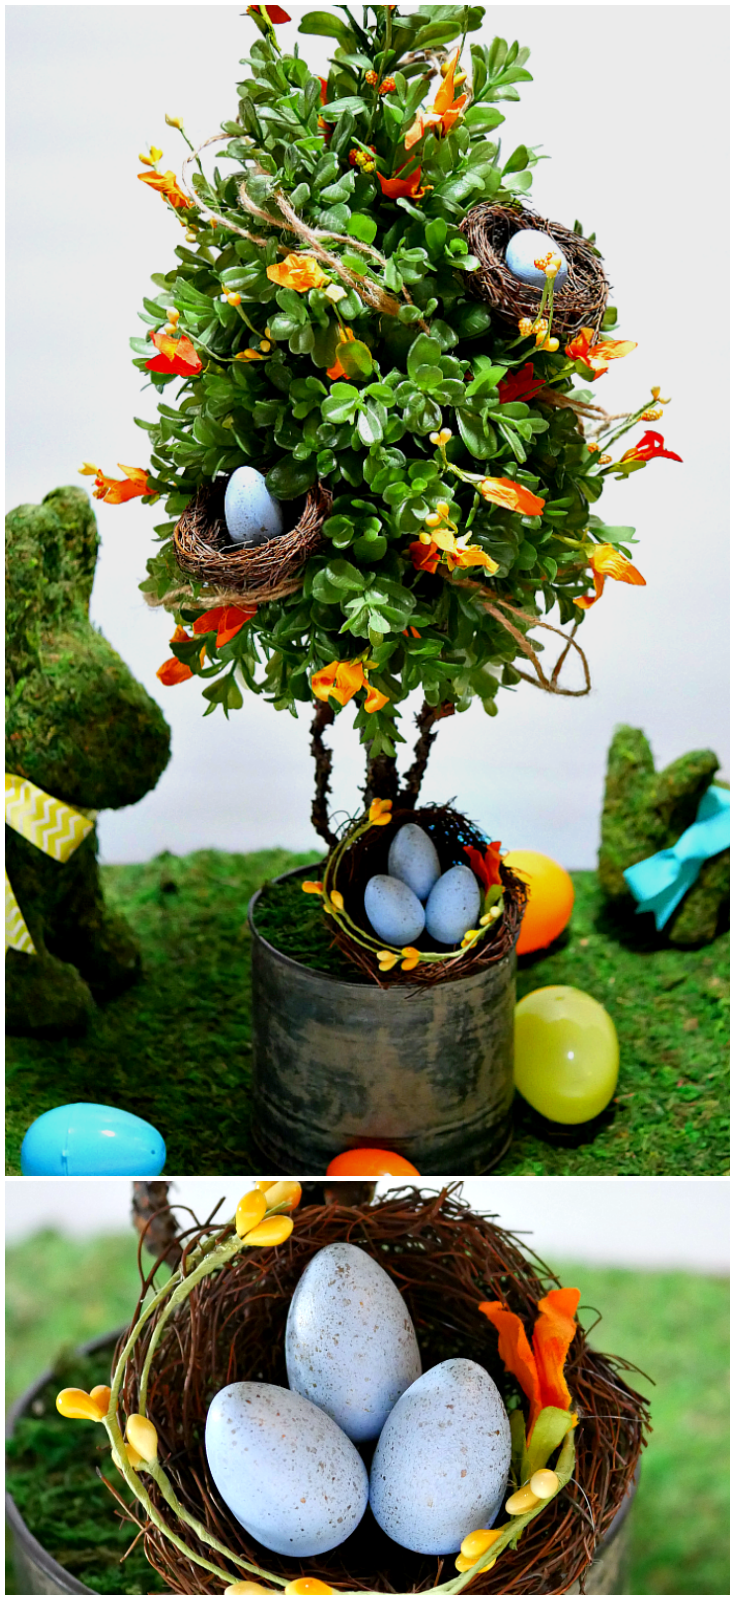 Spring Topiary with Bird Nests